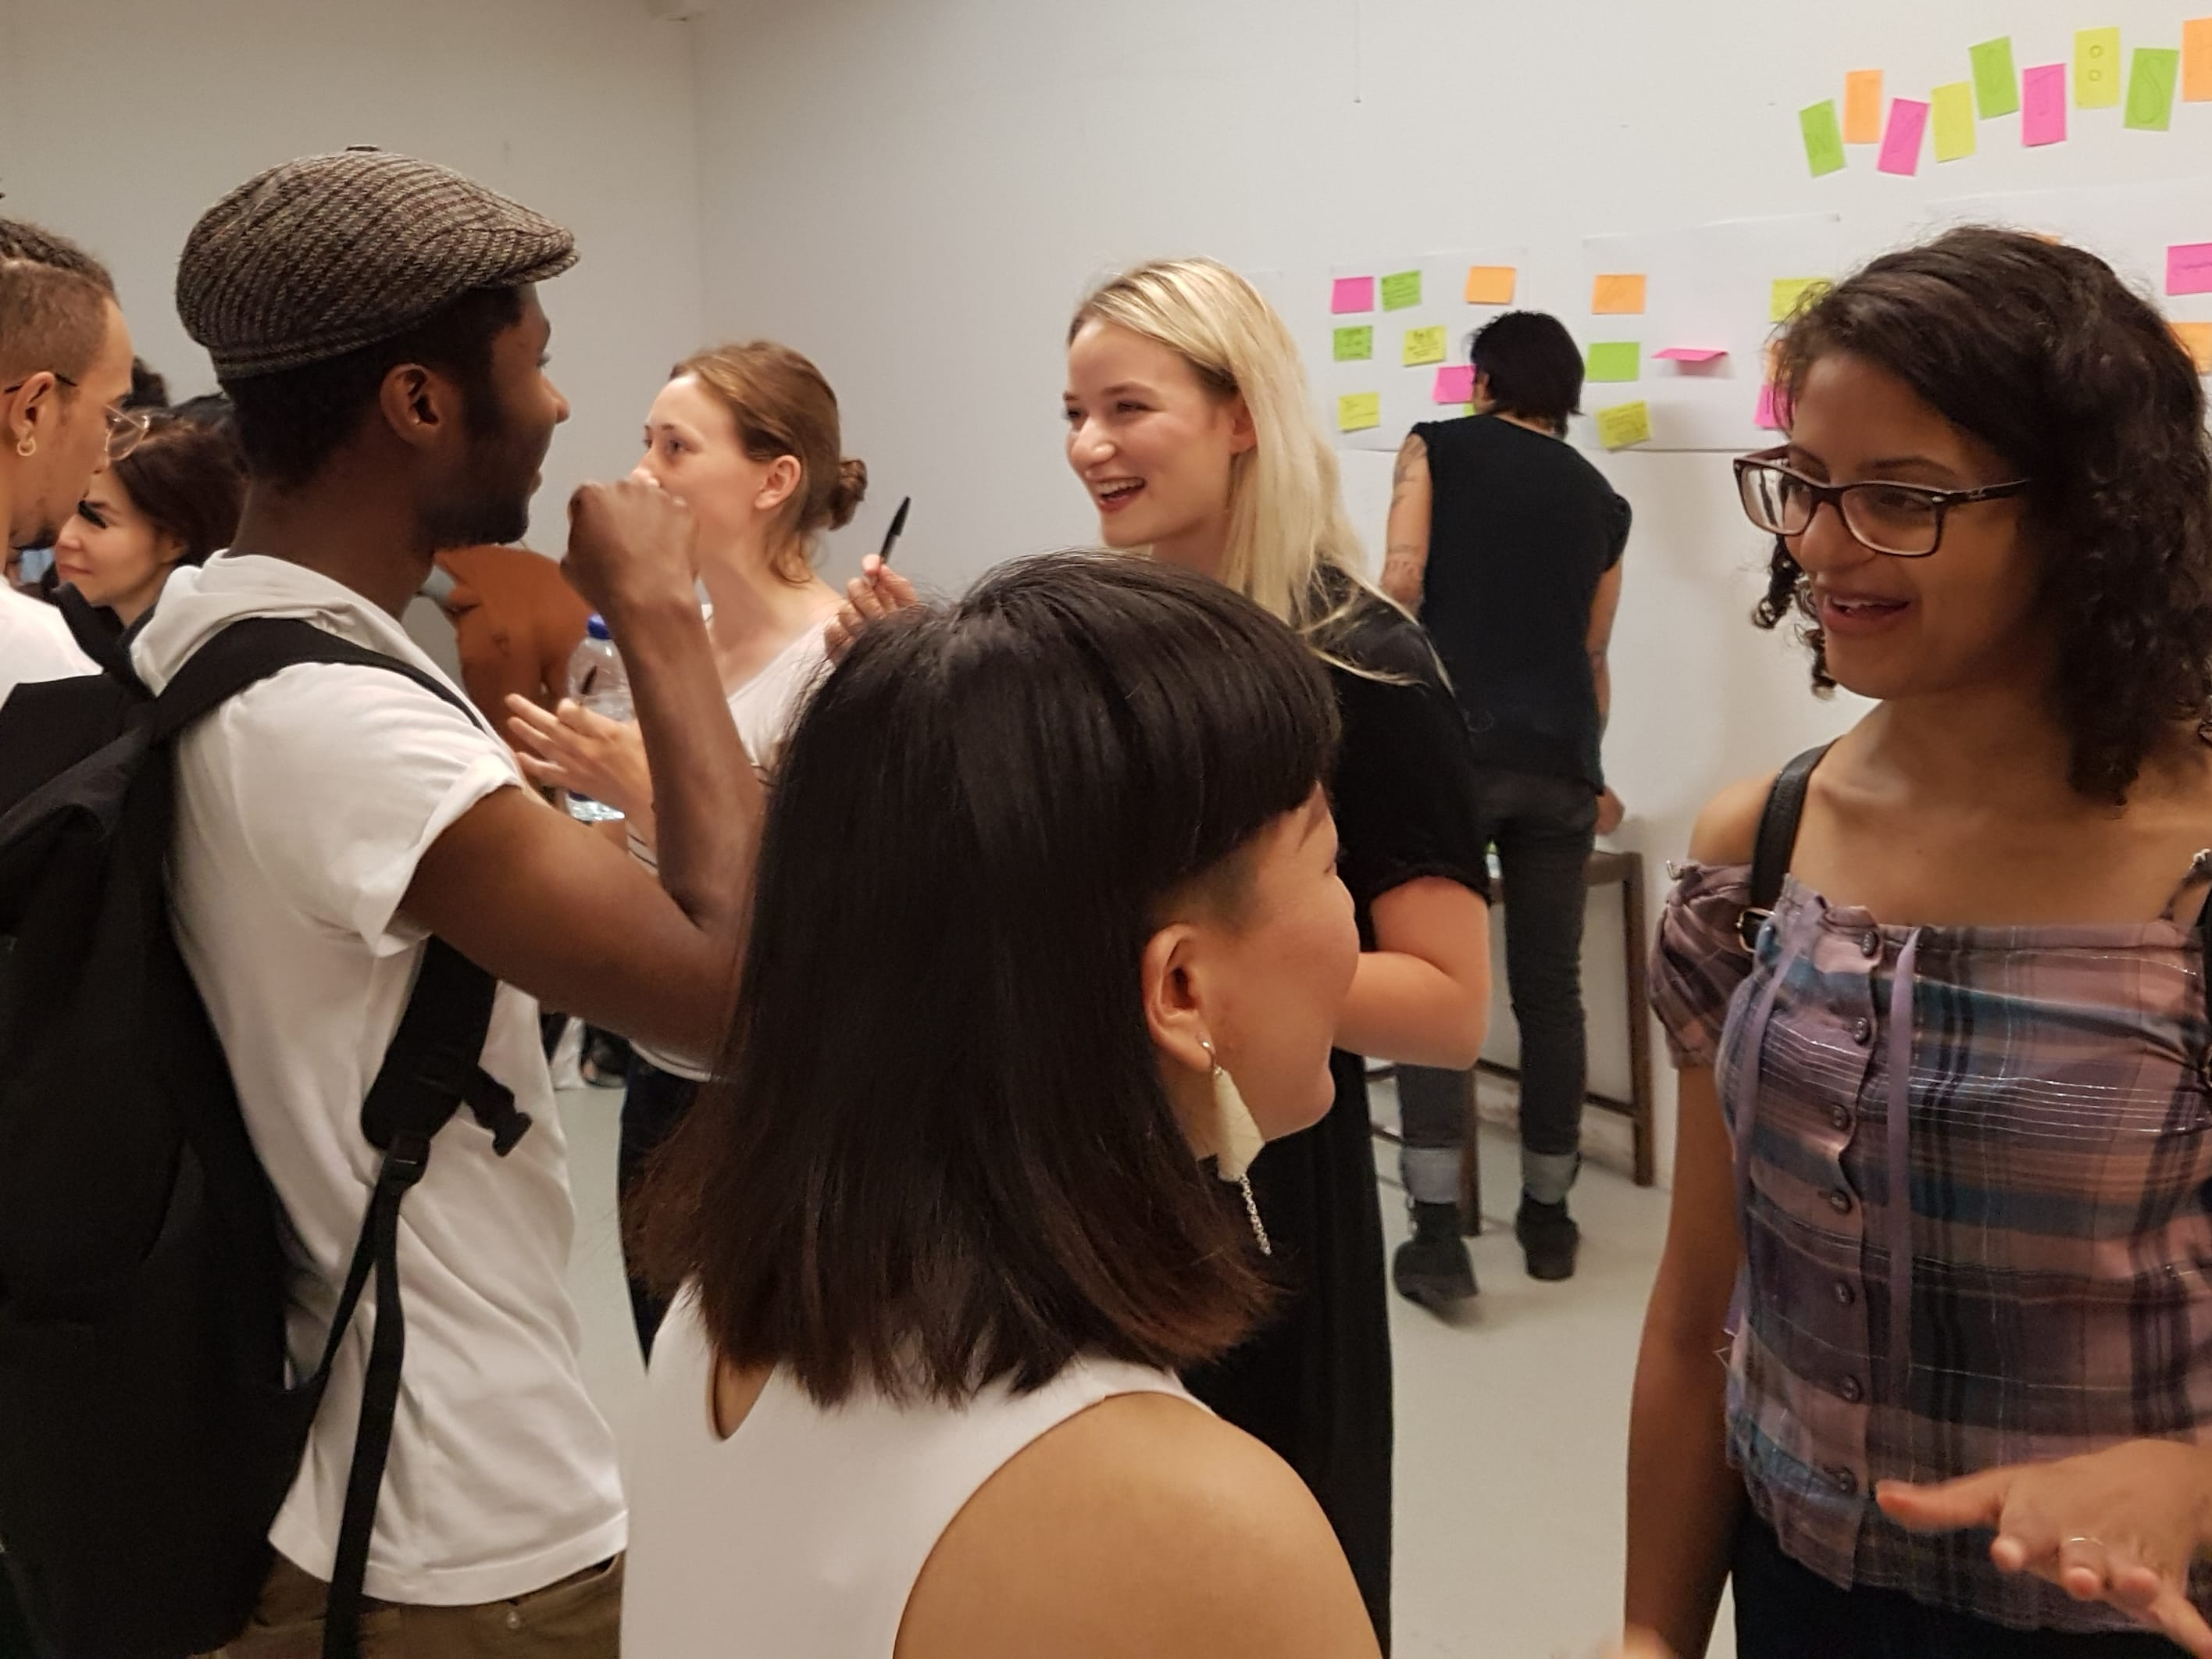 Students meeting at a networking event